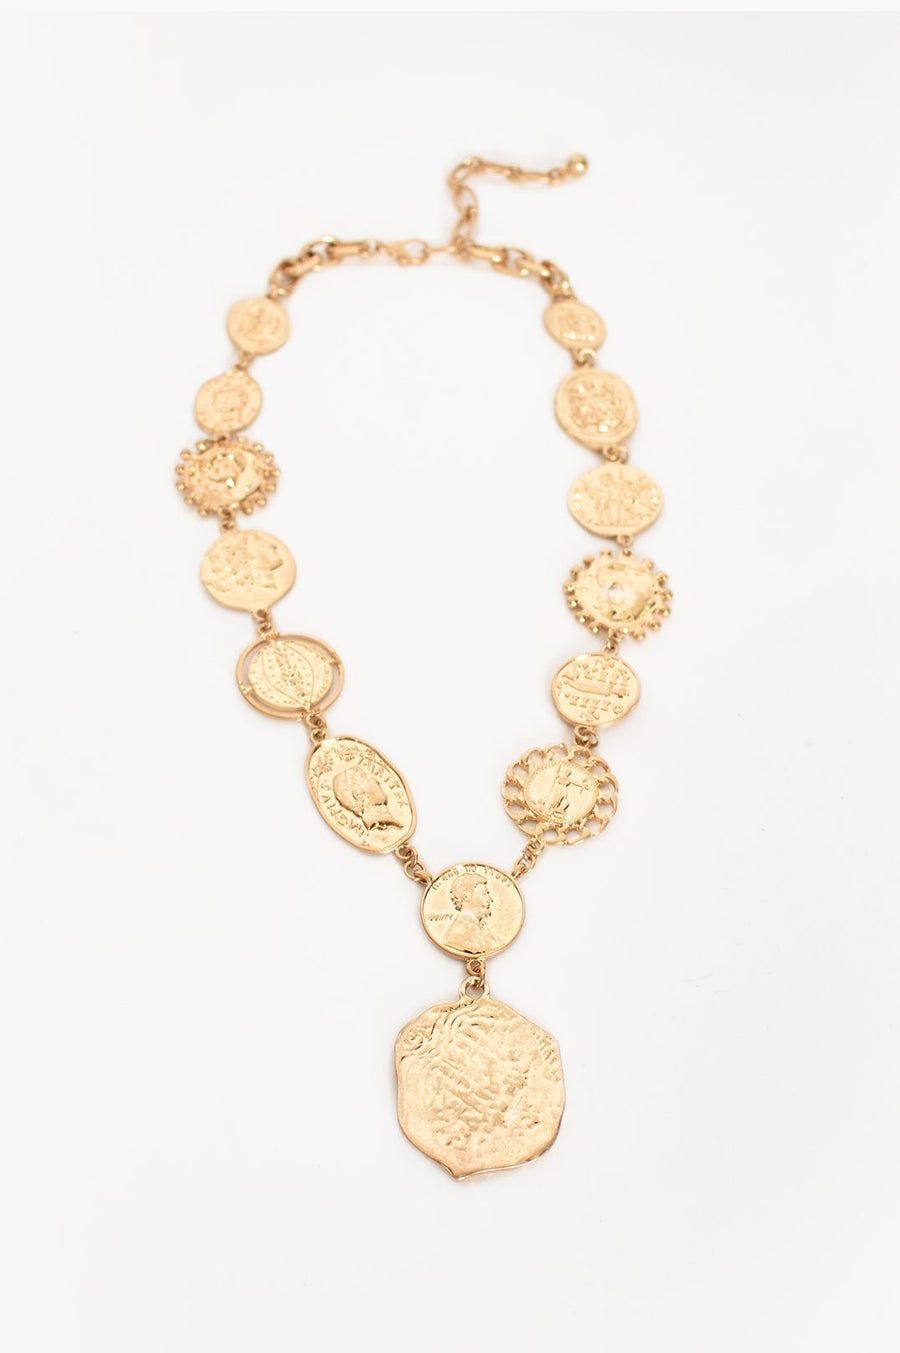 Necklace | LUXE COLLECTION - Roman Coin Necklace Necklace Linart Designs